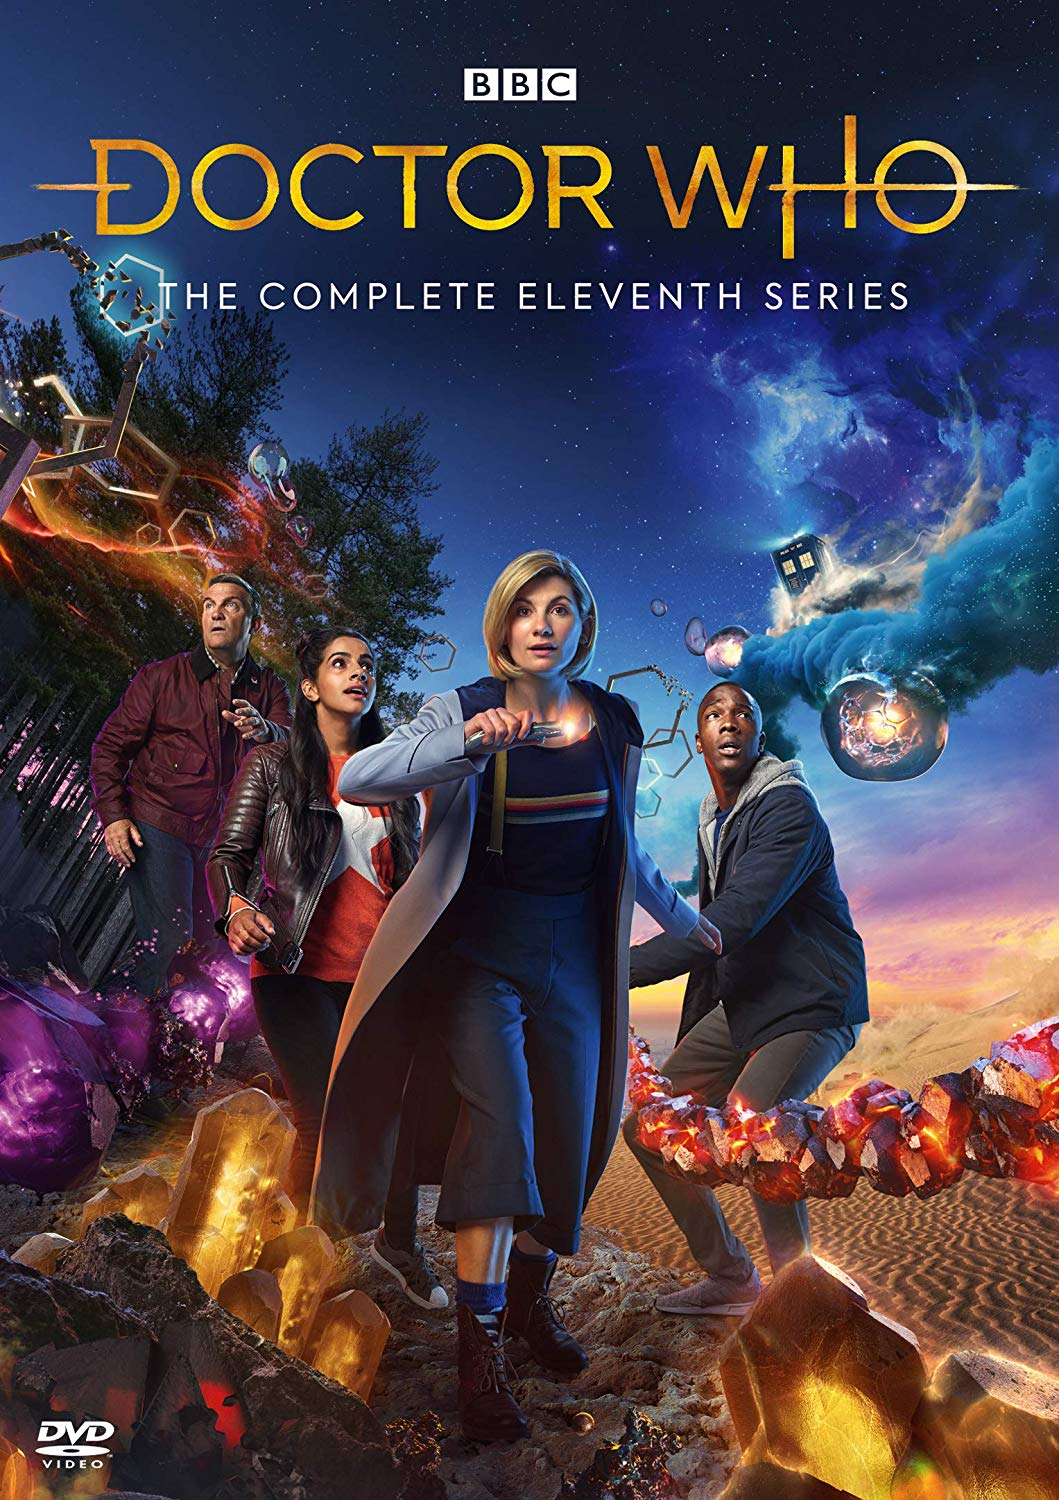 REVIEW: Doctor Who: The Complete Eleventh Series - Available